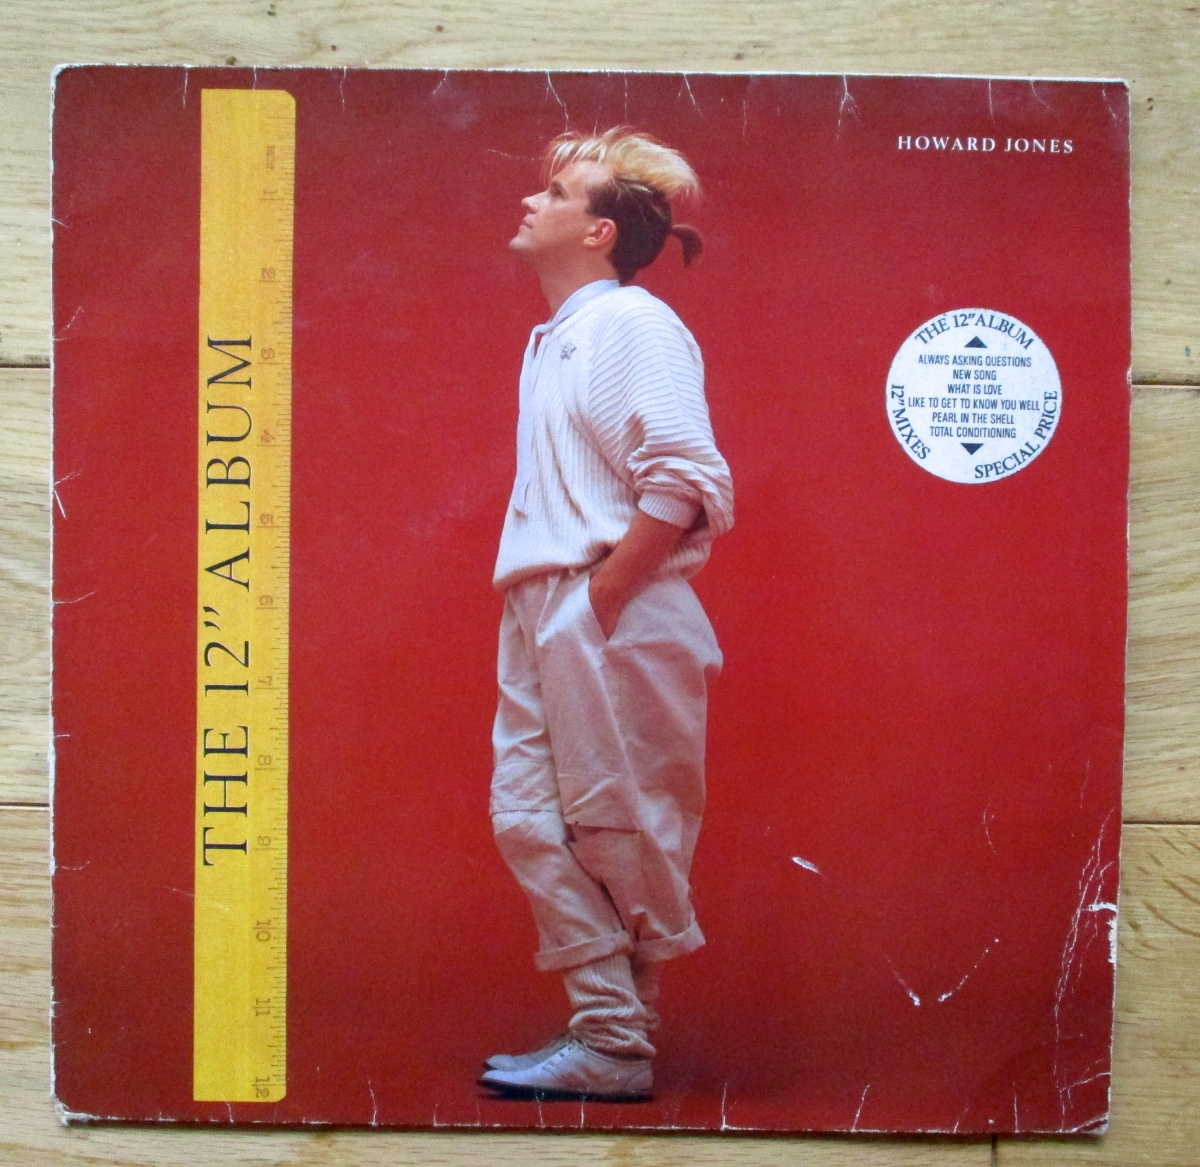 Vintage Vinyl: 12 inches of Howard Jones